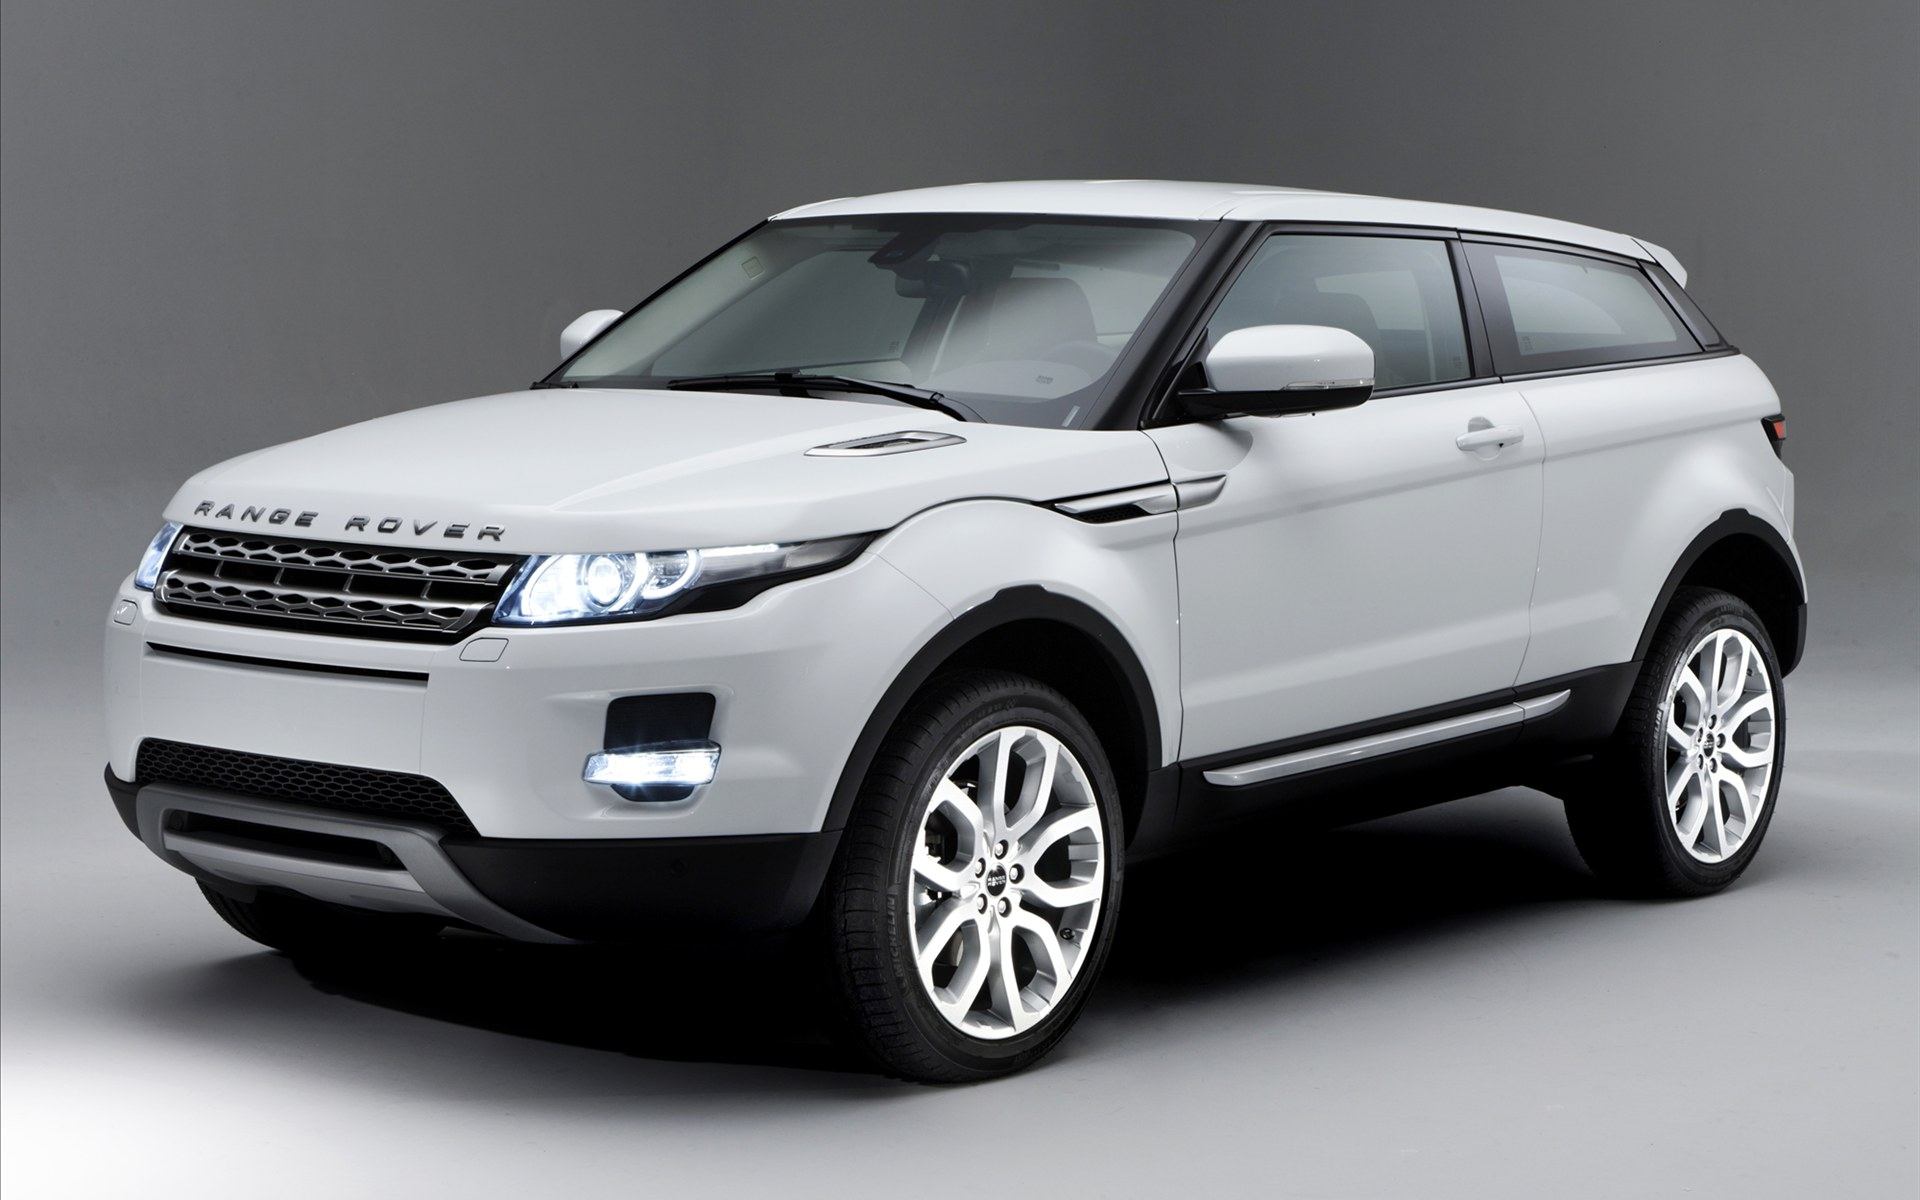 Top Wallpaper High Resolution Range Rover - land-rover-evoque-41-high-resolution-car-wallpaper  You Should Have_37869.jpg